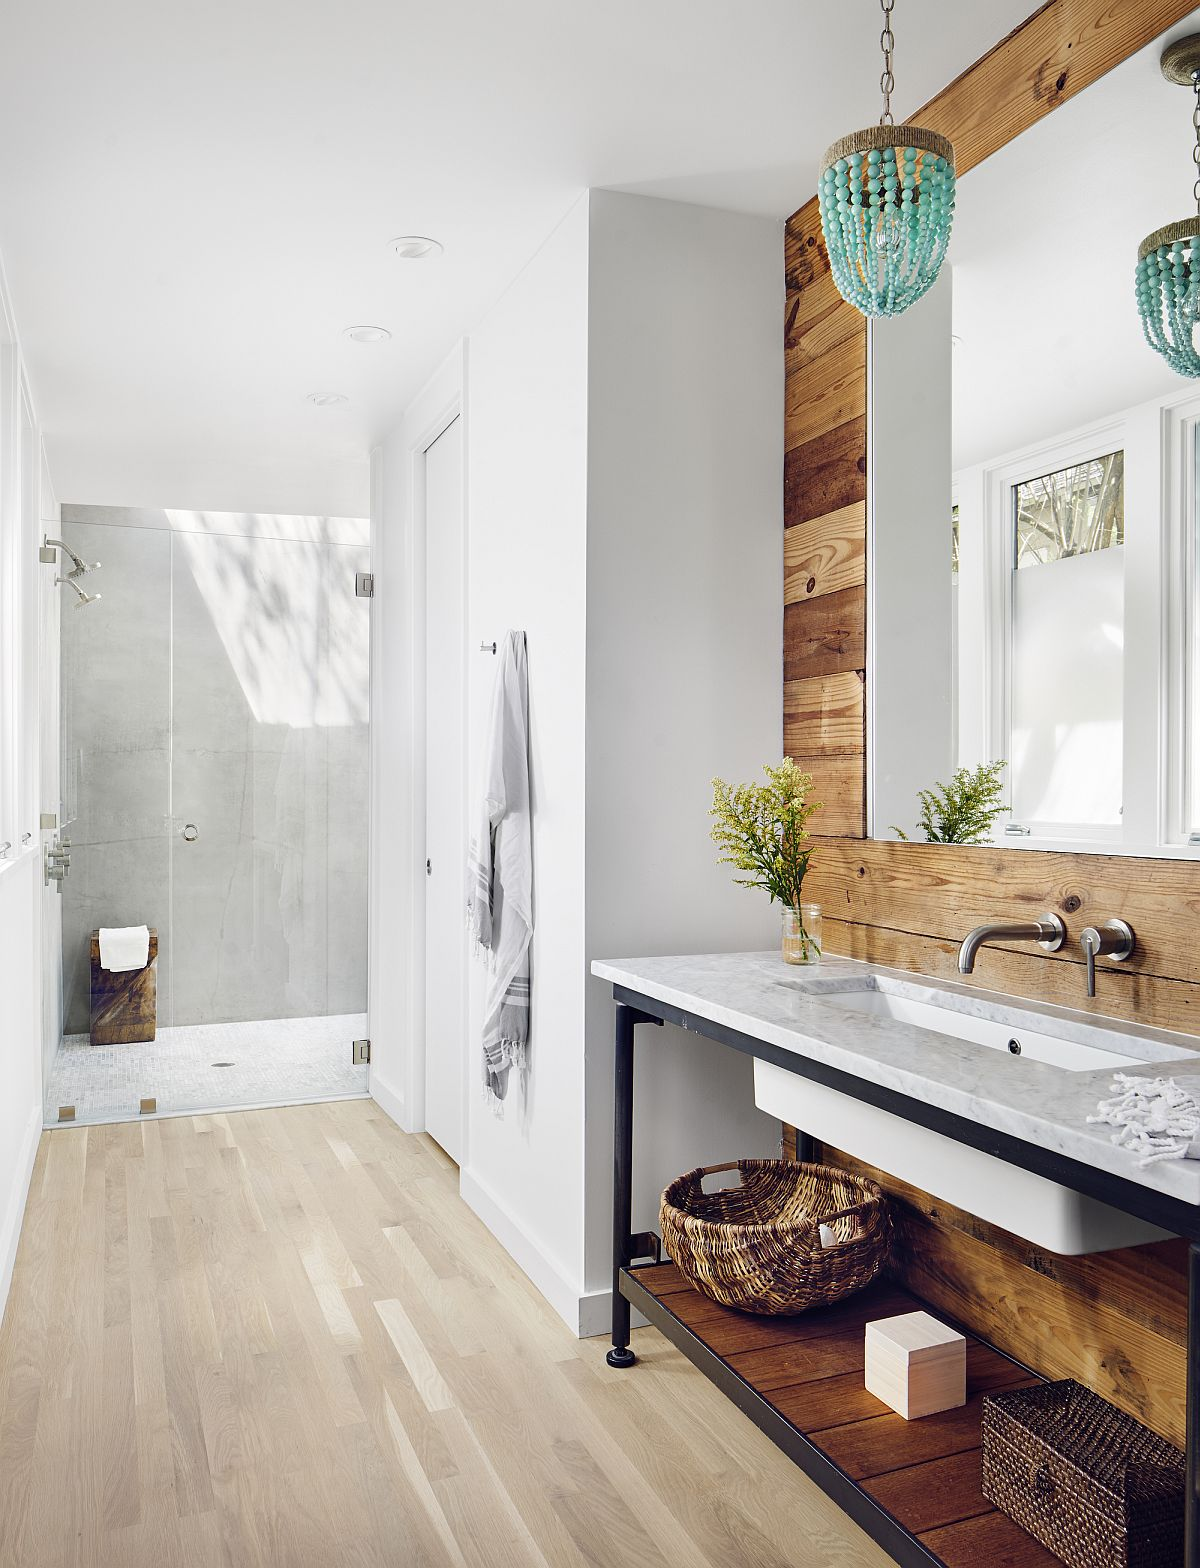 Reclaimed wood adds softness and unique character to the contemporary white bathroom